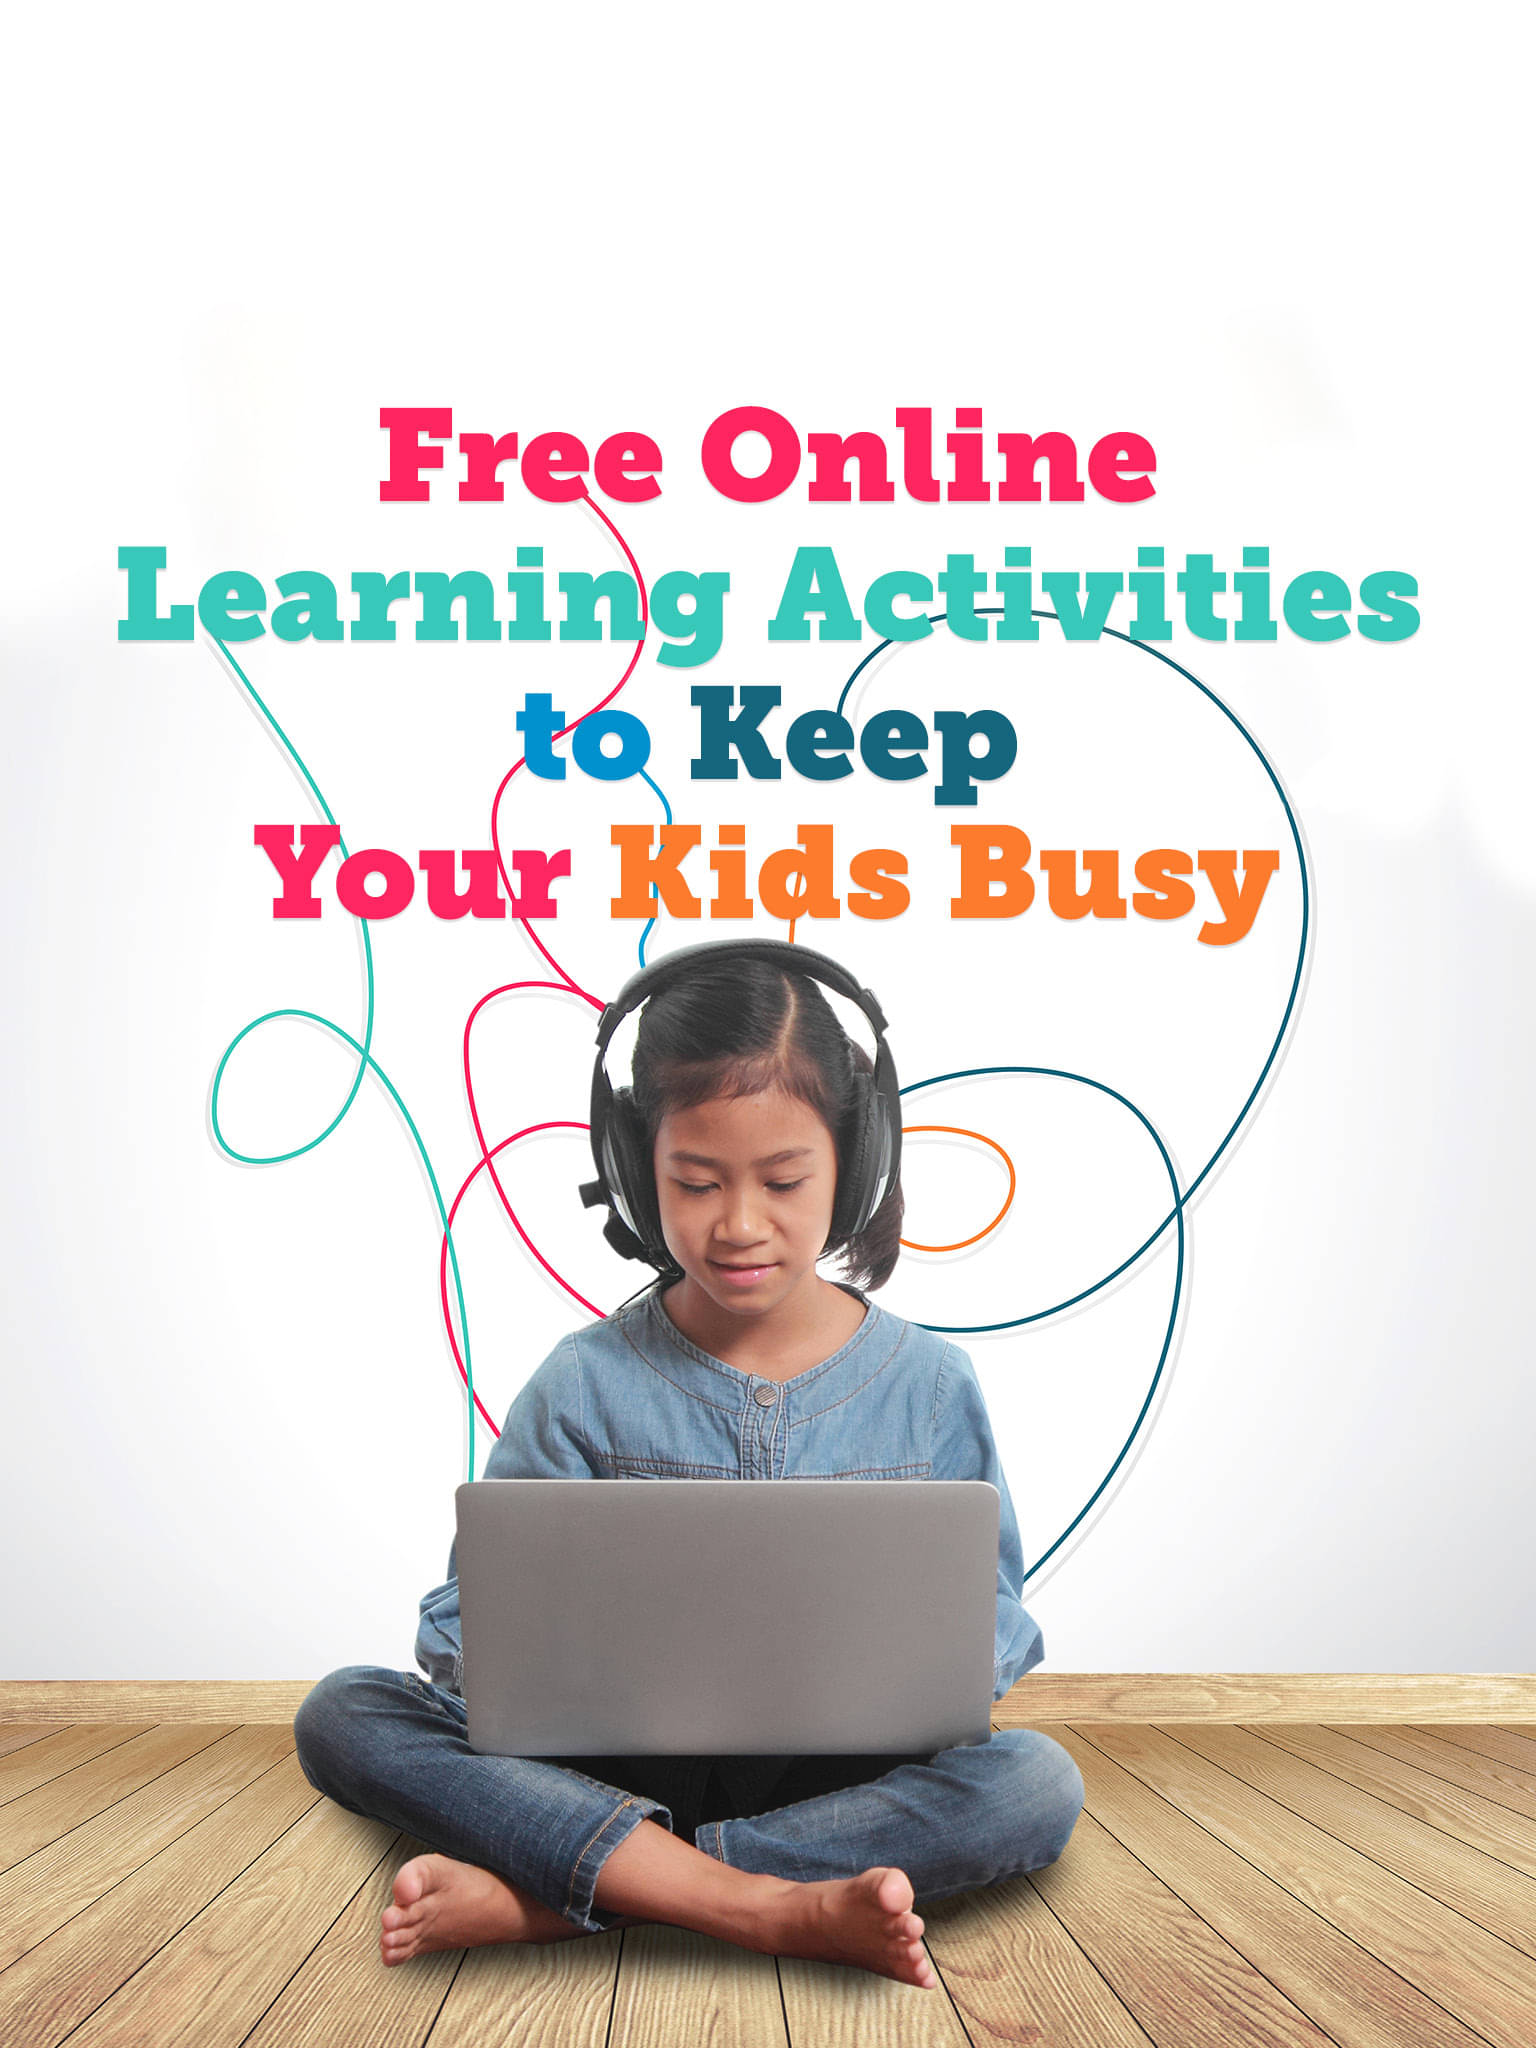 Free Online Learning Activities to Keep Your Kids Busy